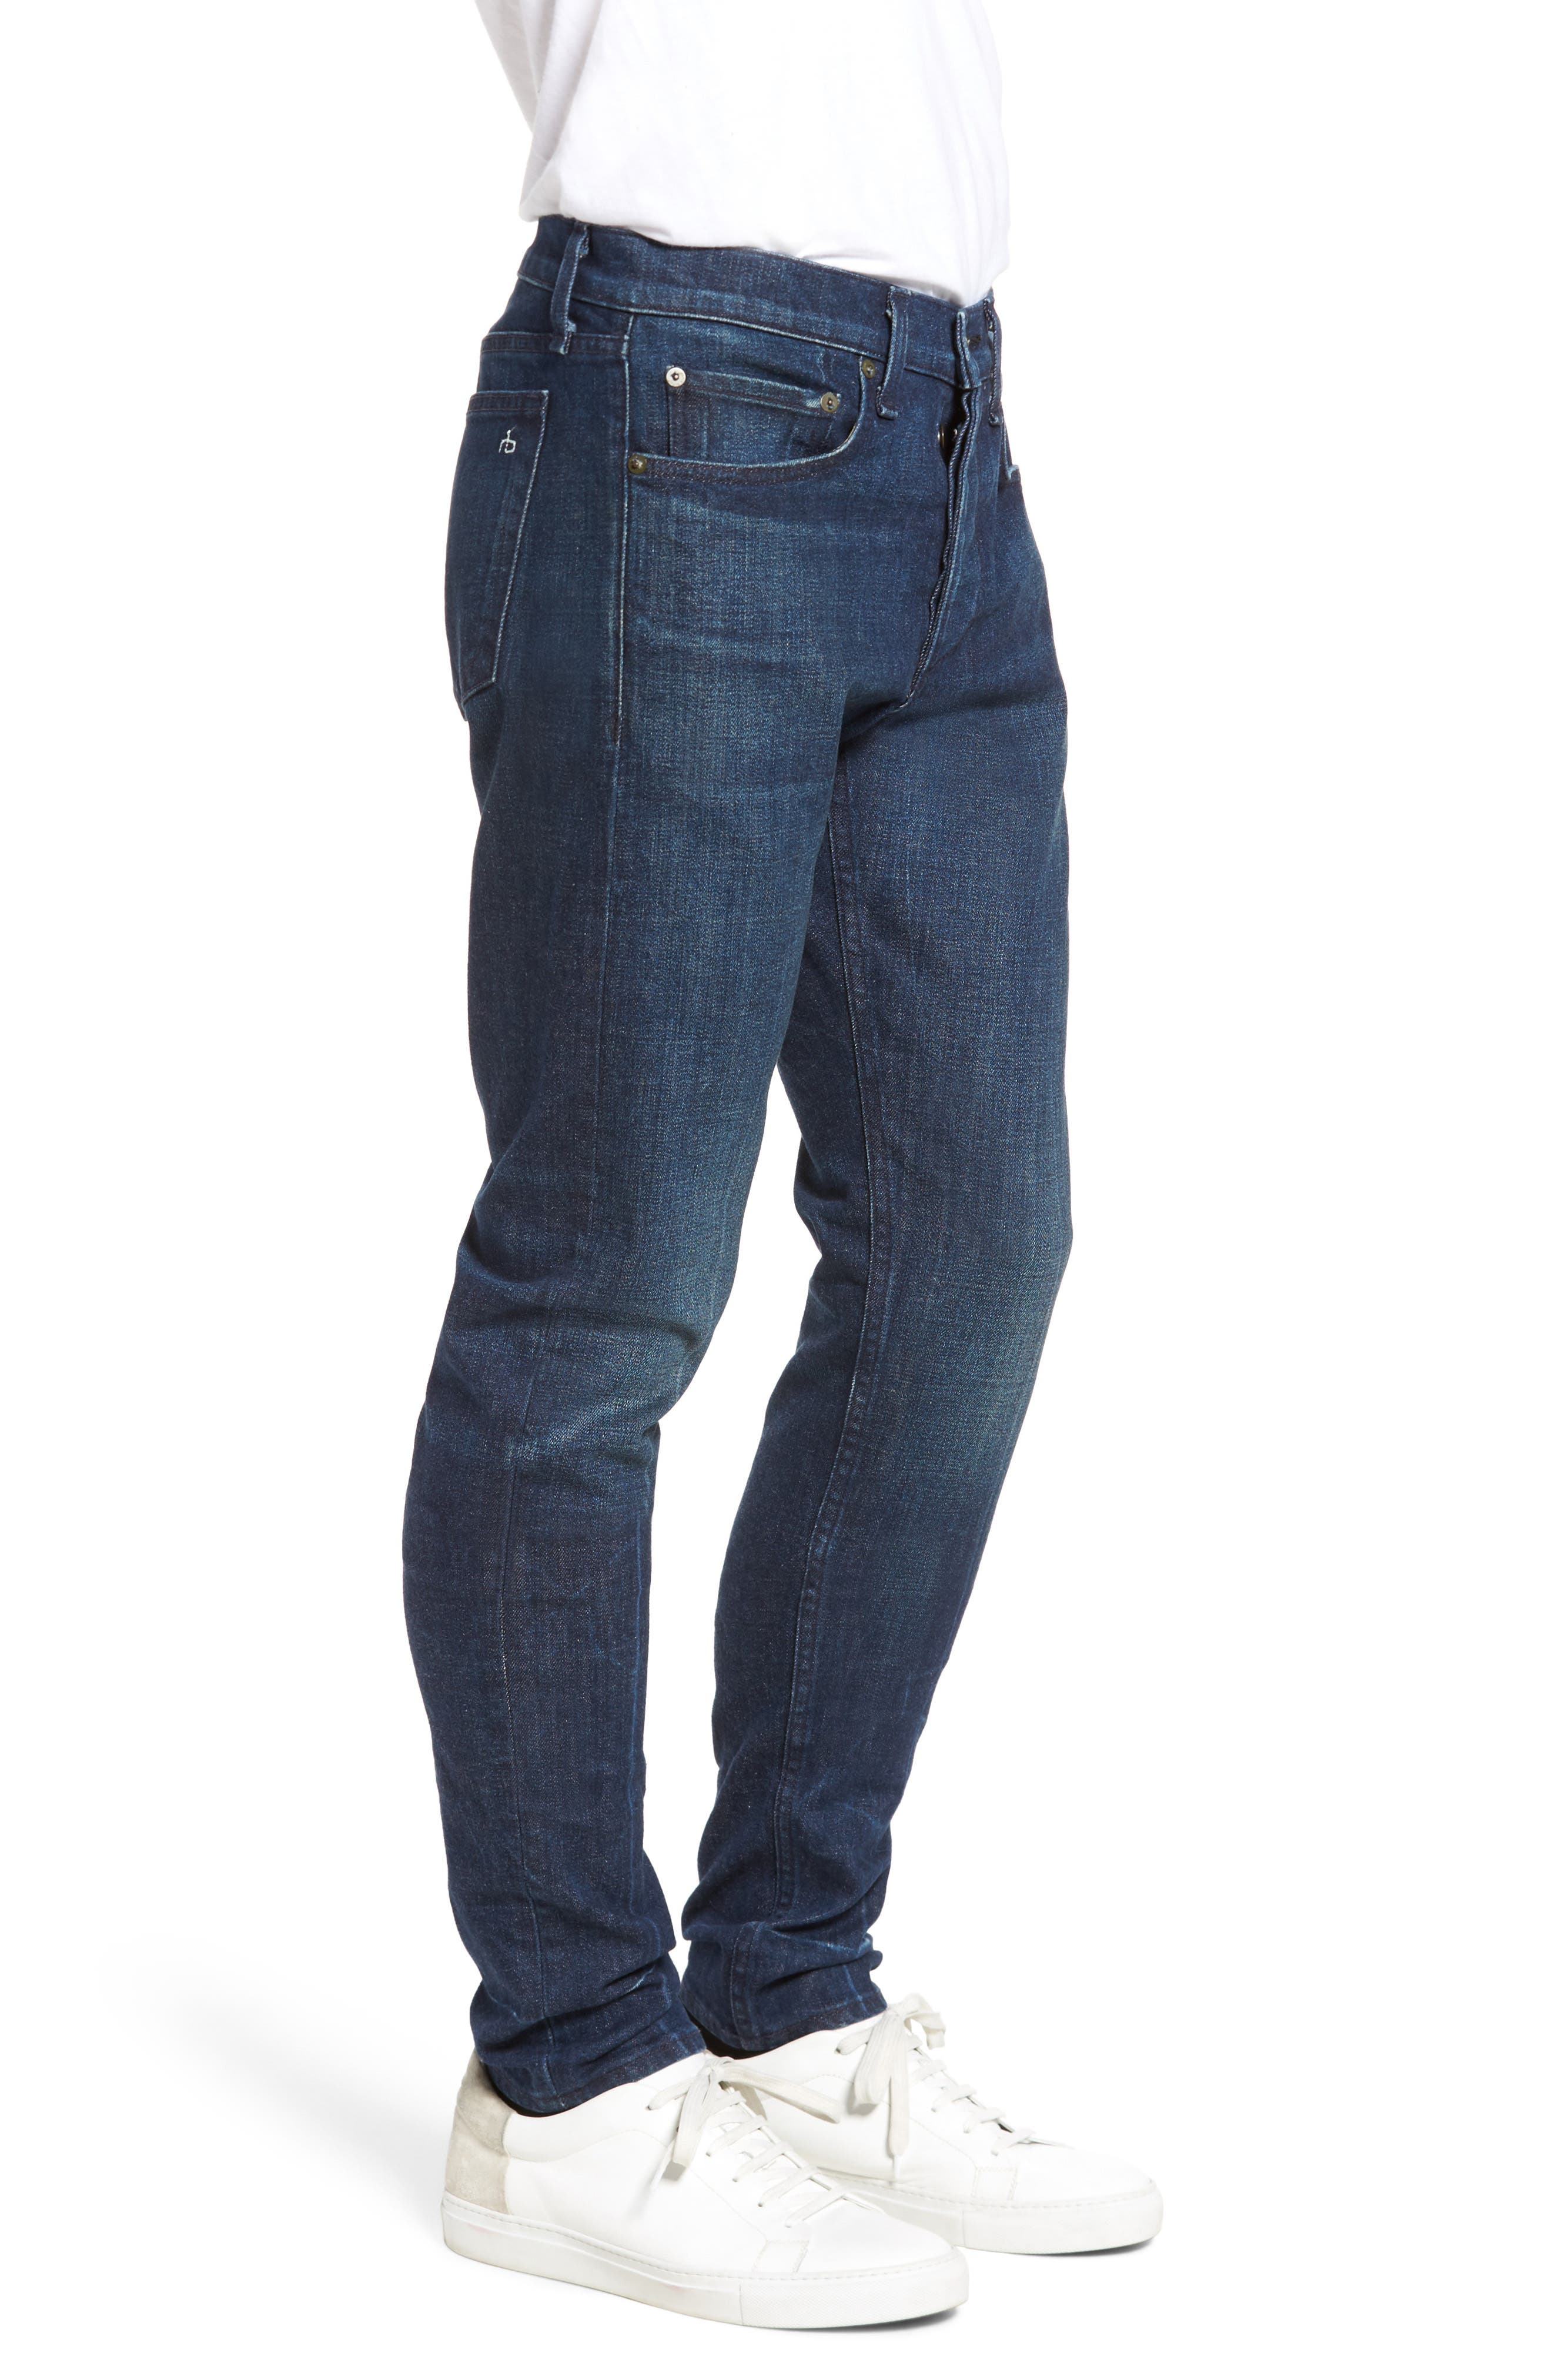 Fit 1 Skinny Fit Jeans,                             Alternate thumbnail 3, color,                             402